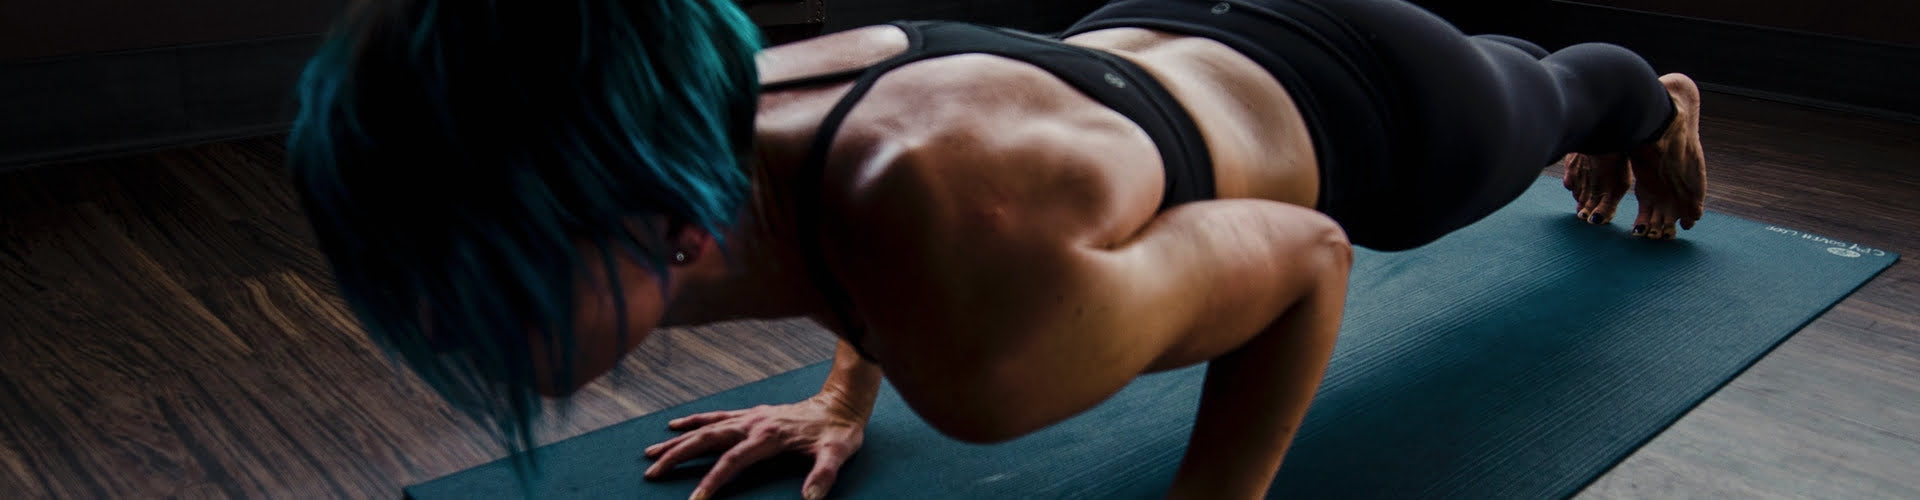 woman doing chatturanga pushups